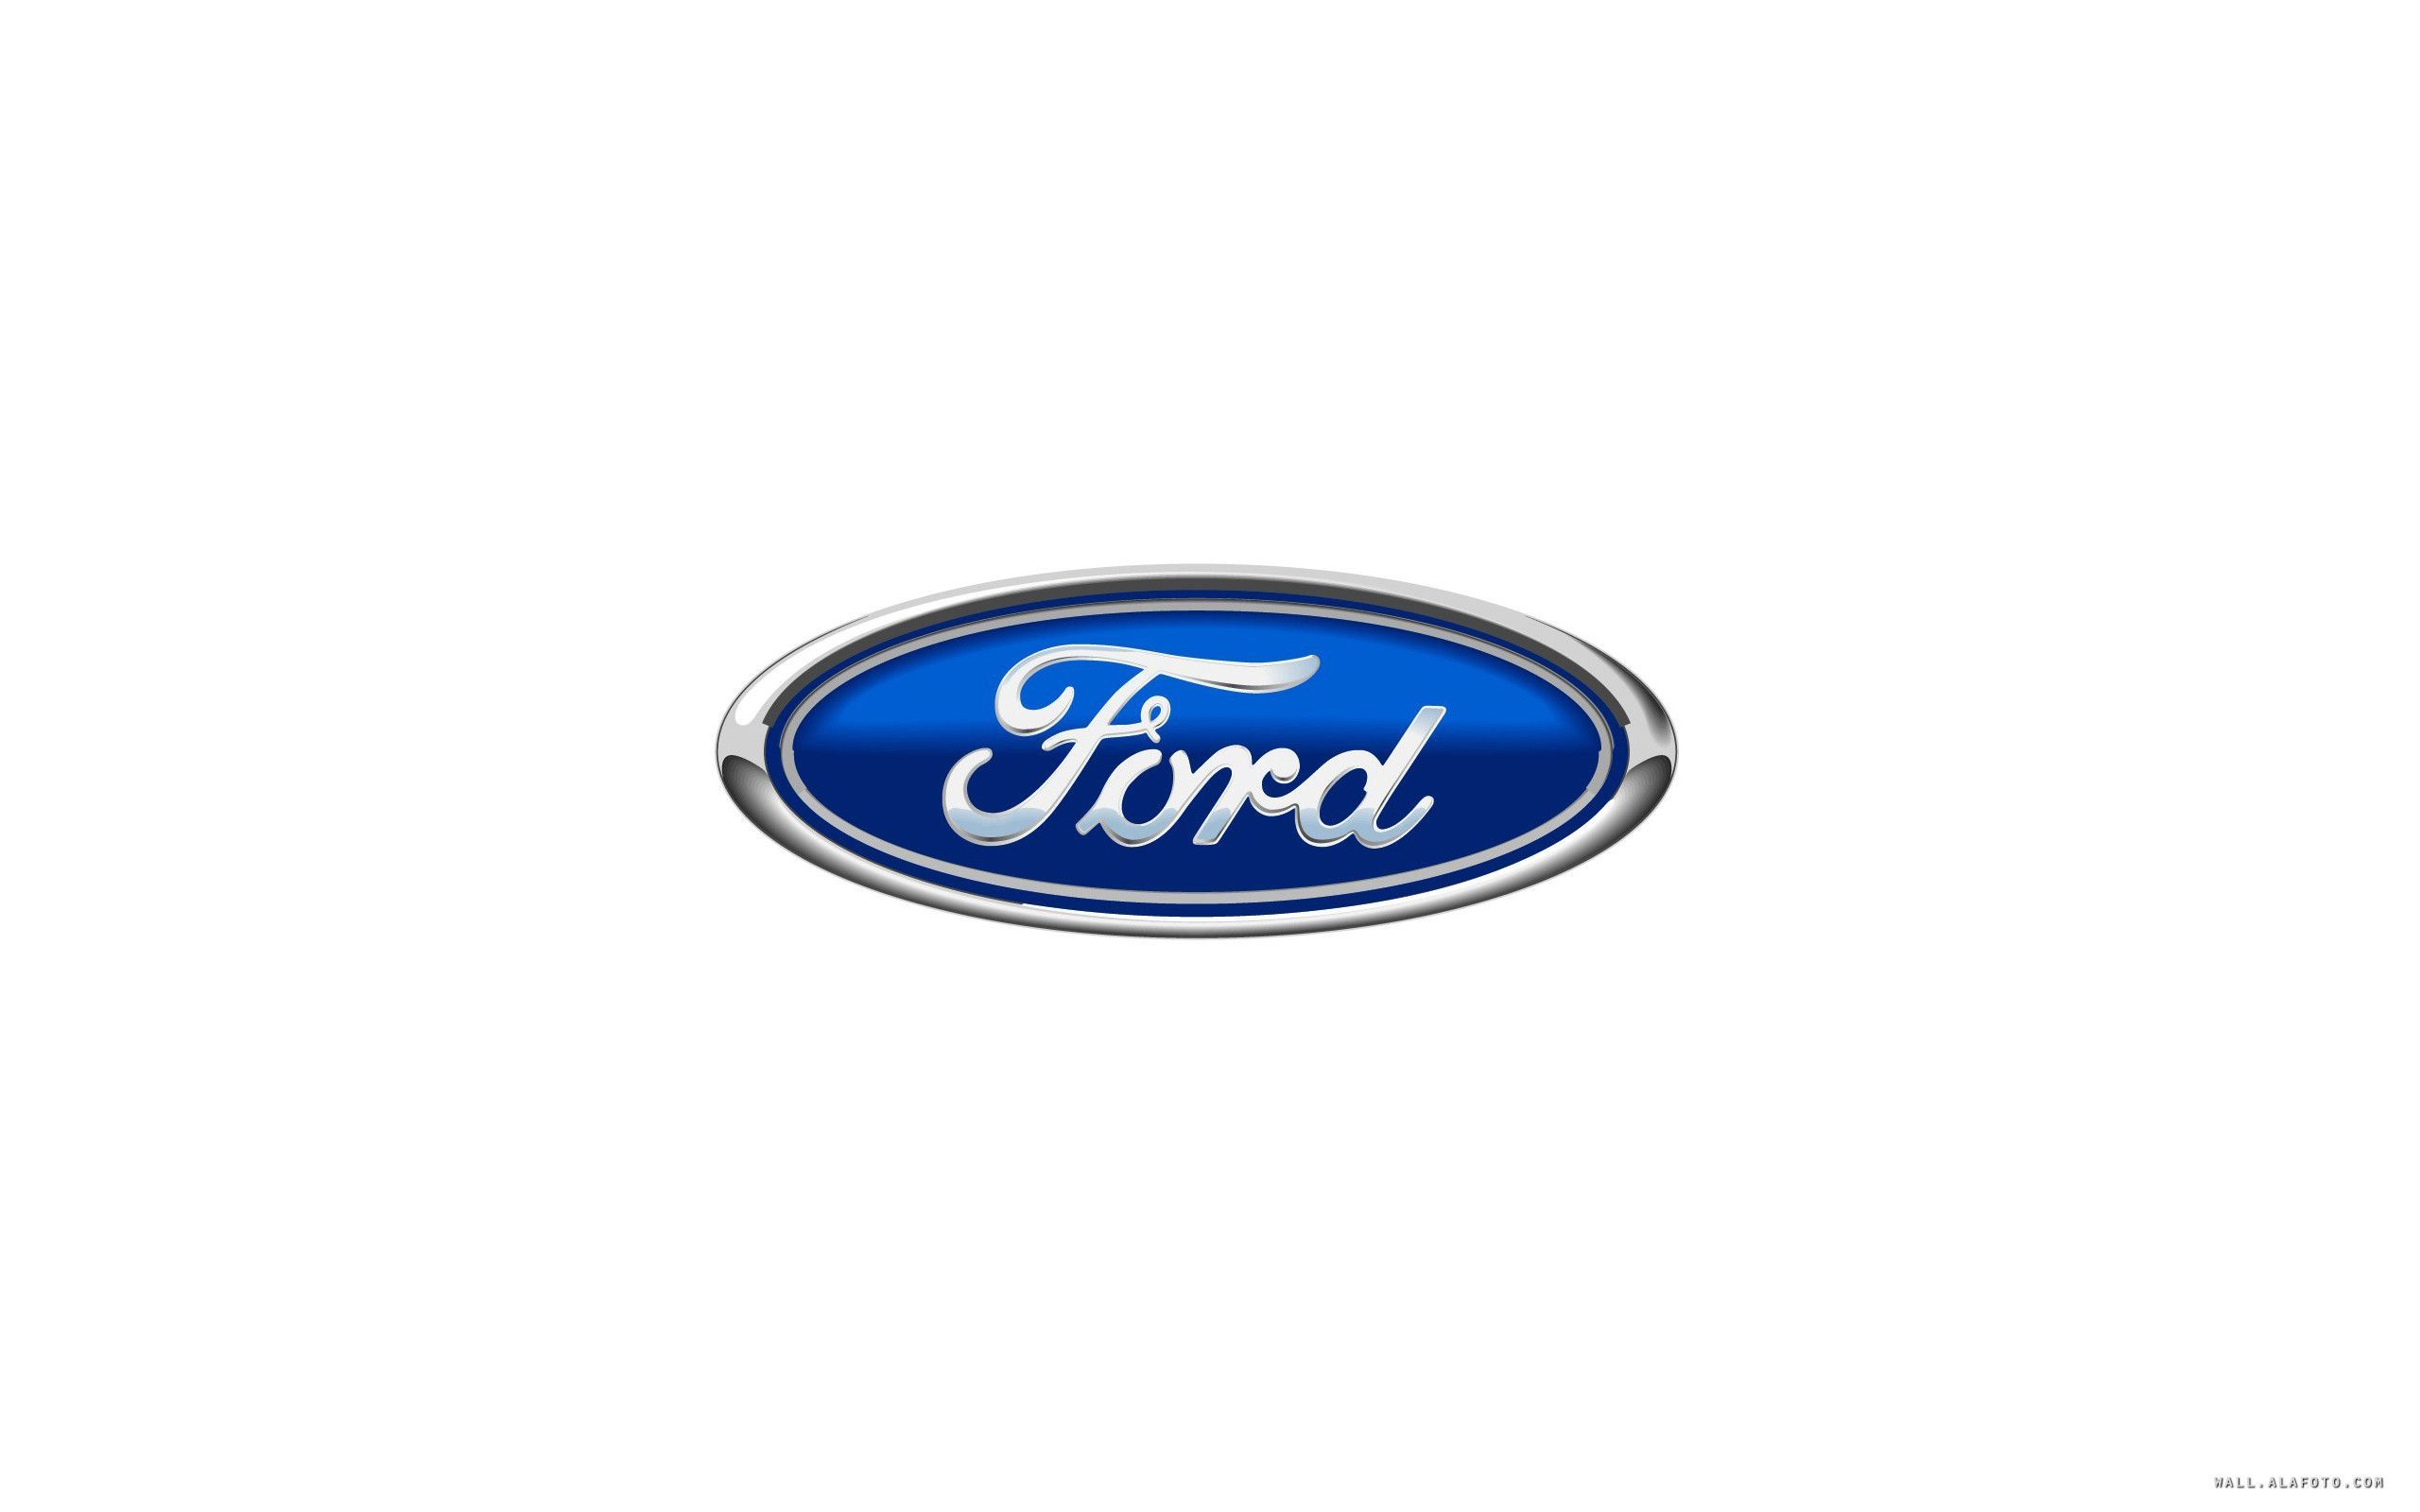 Ford Logos Hd Full Hd Pictures